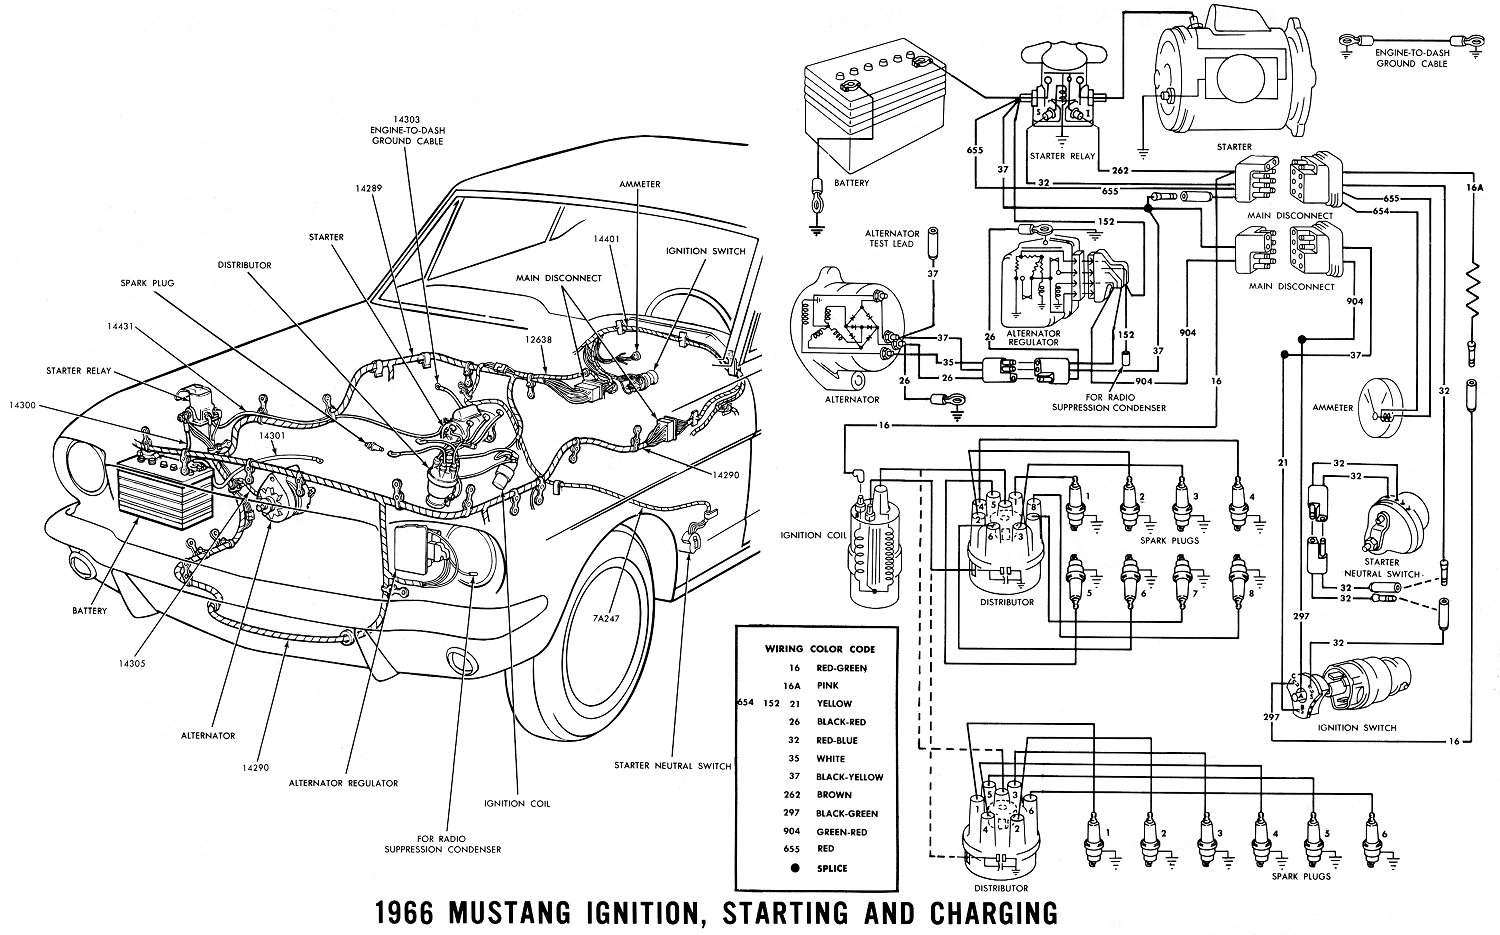 66ignit 1966 mustang wiring diagrams average joe restoration 1993 suburban ignition wiring harness diagram at alyssarenee.co